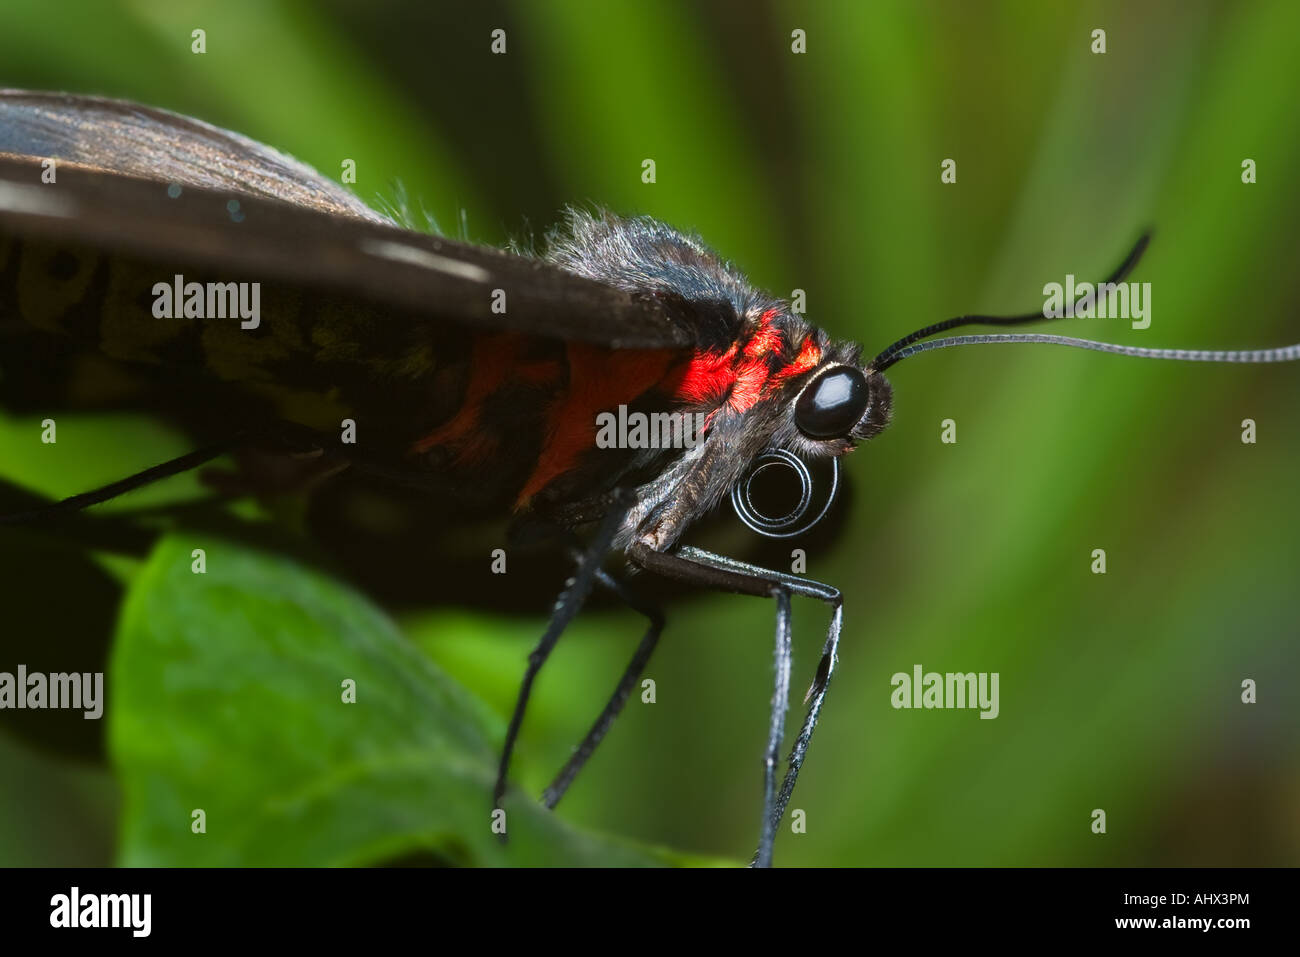 close up macro image of a black and red butterfly - Stock Image